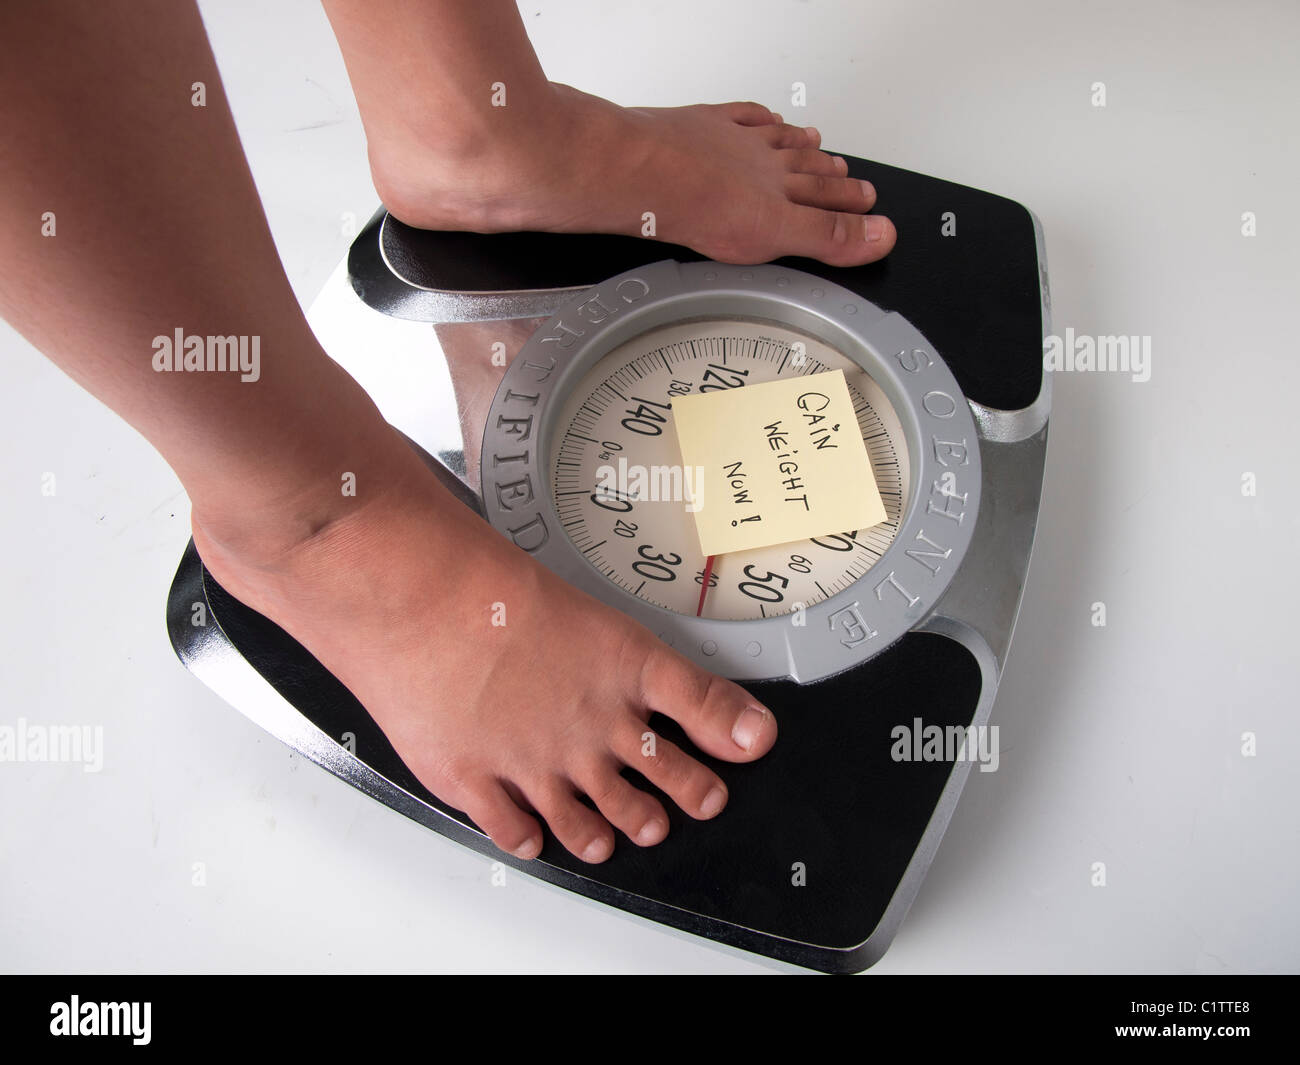 weighing scale stock photos weighing scale stock images alamy